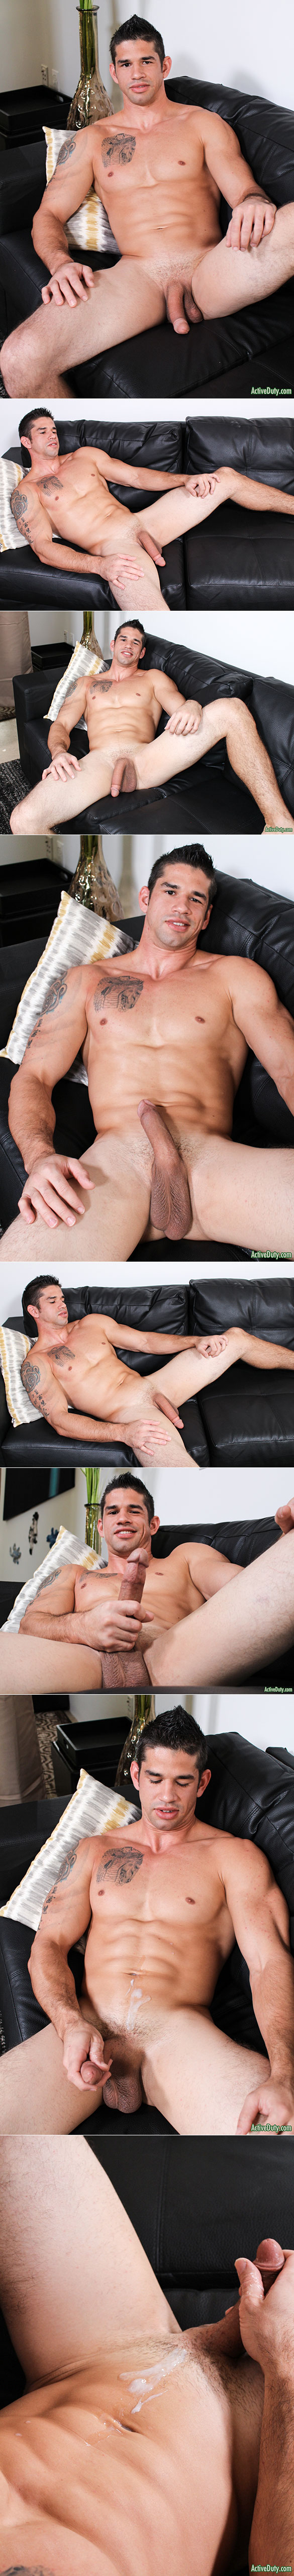 ActiveDuty: Big-dicked muscle stud Jason Richards rubs one out